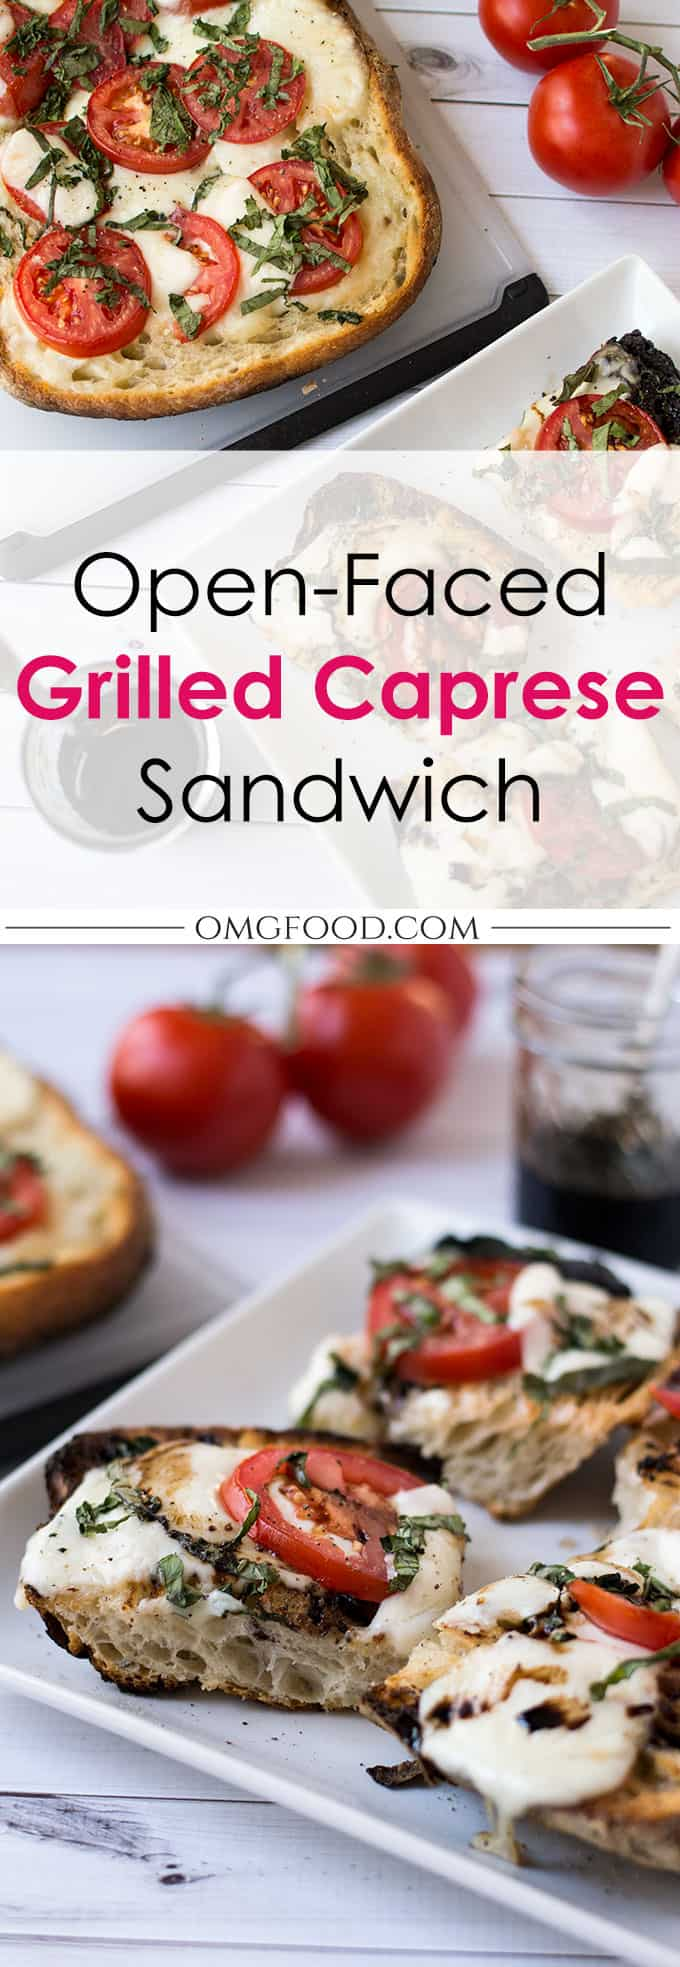 Pinterest banner for open-faced grilled caprese sandwich.